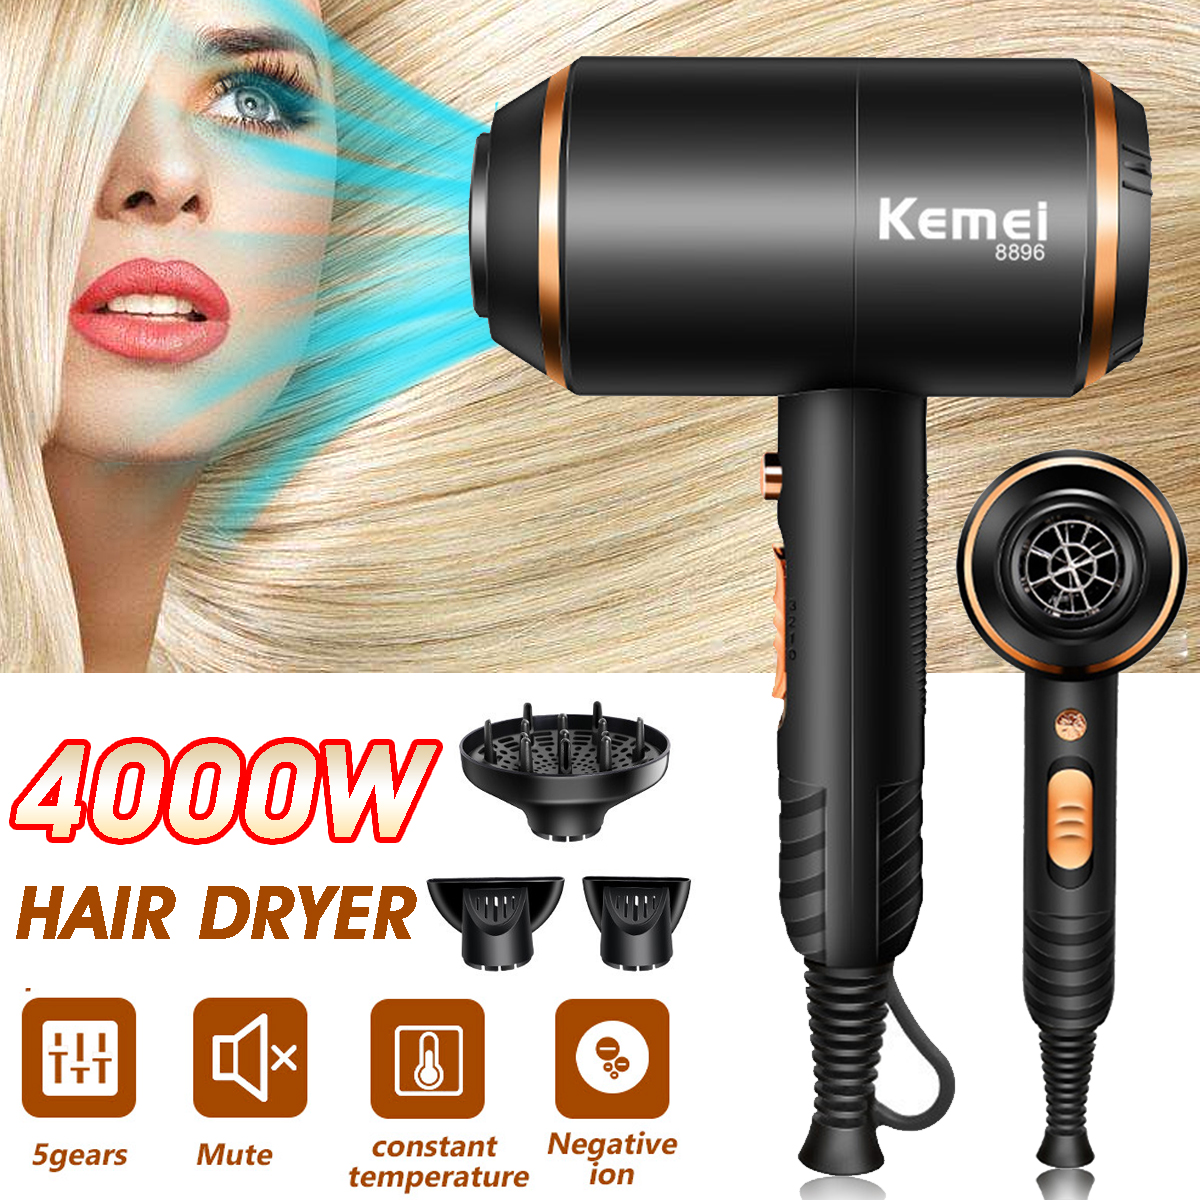 Becornce 110-220v 4000W Professional Hair Dryer Hot Cold Ionic Blow Dryer Fast Heating Household Hairdryer For Hairdressing